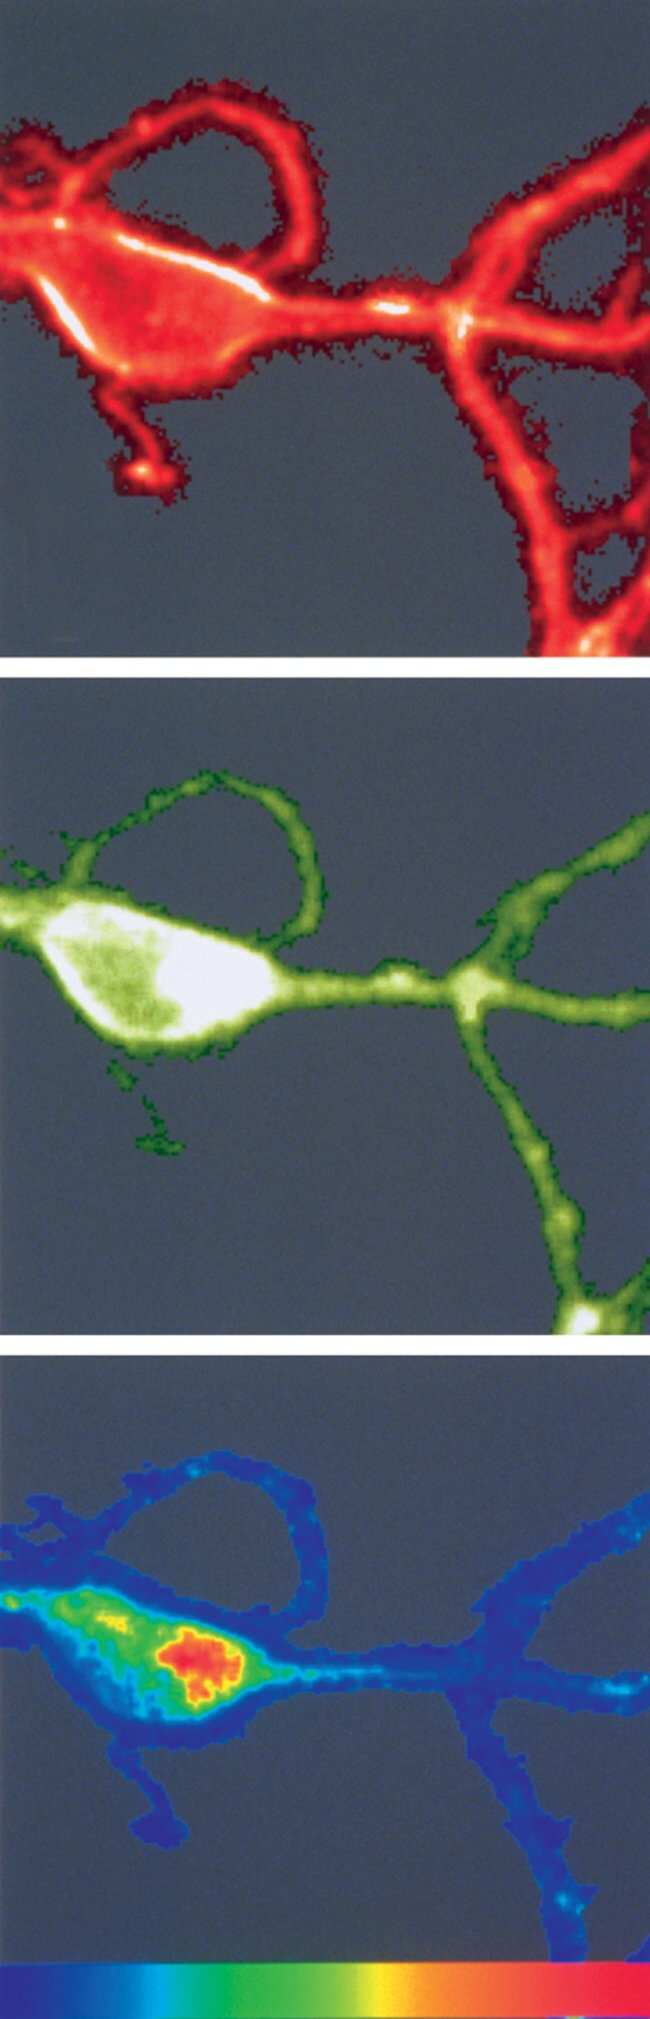 Cultured olfactory bulb neuron stained with RH 414 and DM-BODIPY®(–)-dihydropyridine.